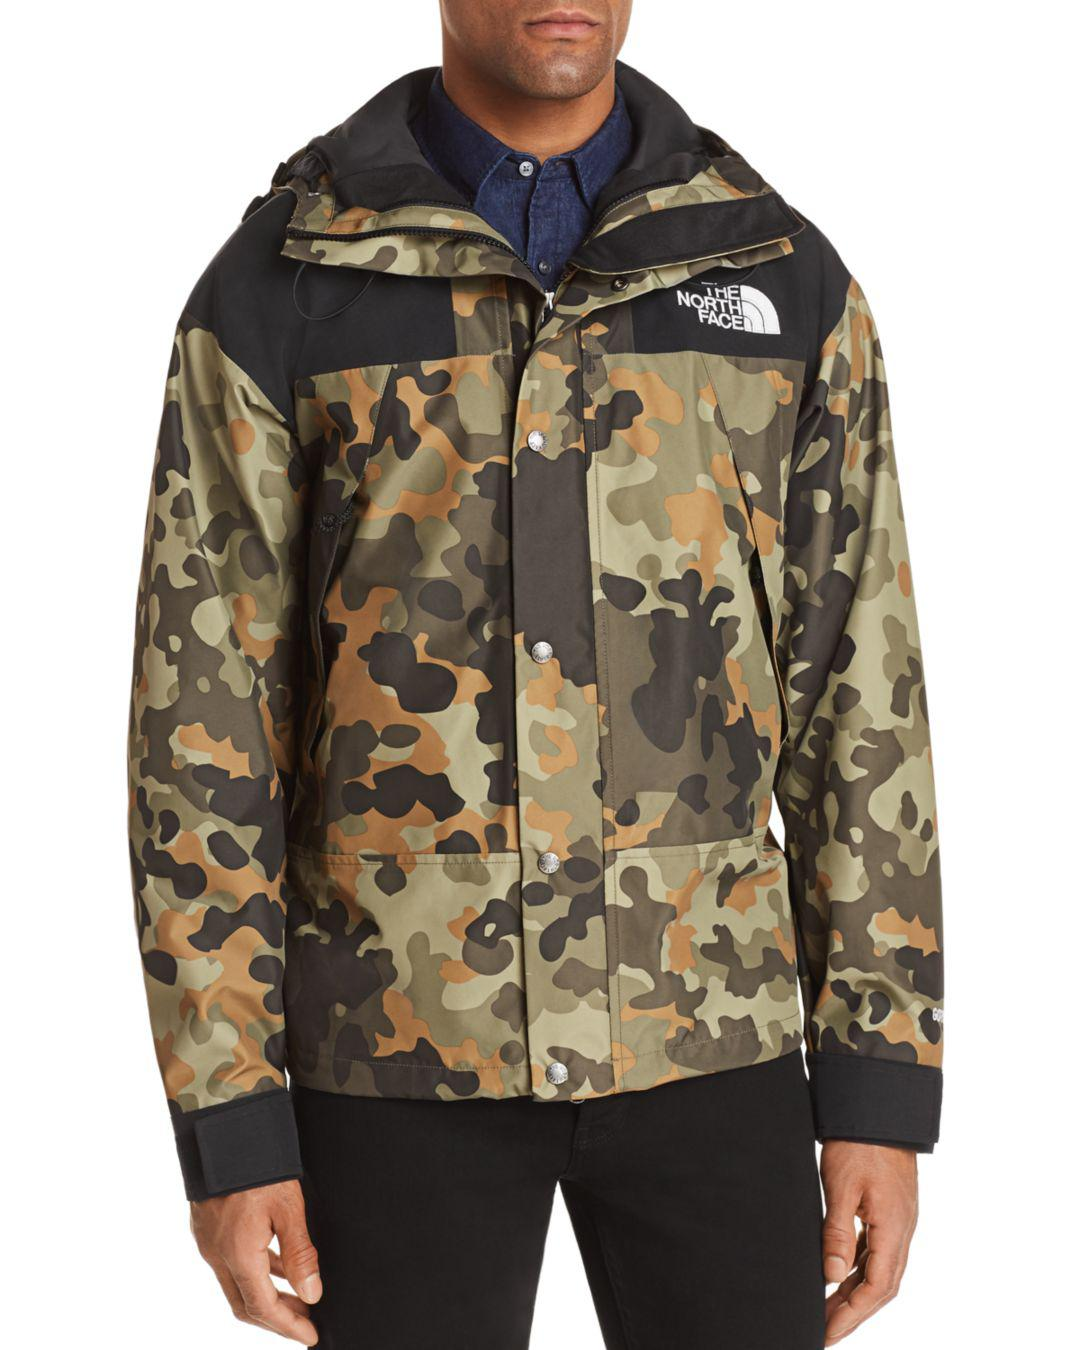 c7aedaf1afe4 ... denali 134fd 0ced5  germany lyst the north face mountain camouflage  print anorak jacket for men 76409 3c1c5